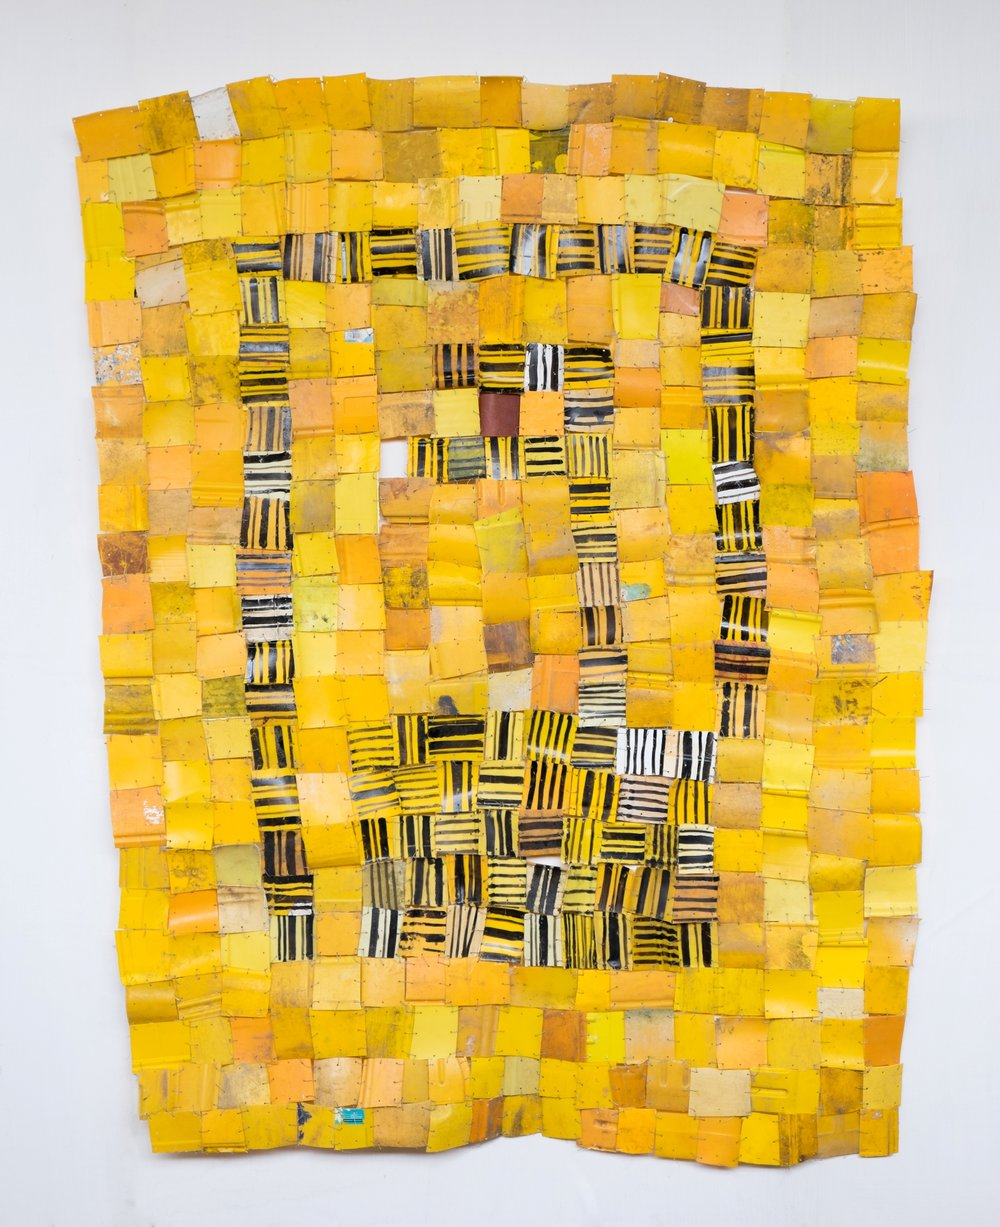 Serge Attukwei Clottey, Packed Community, 2016, plastics, wire and oil paint, 60'' x 78'', courtesy the artist and Gallery 1957